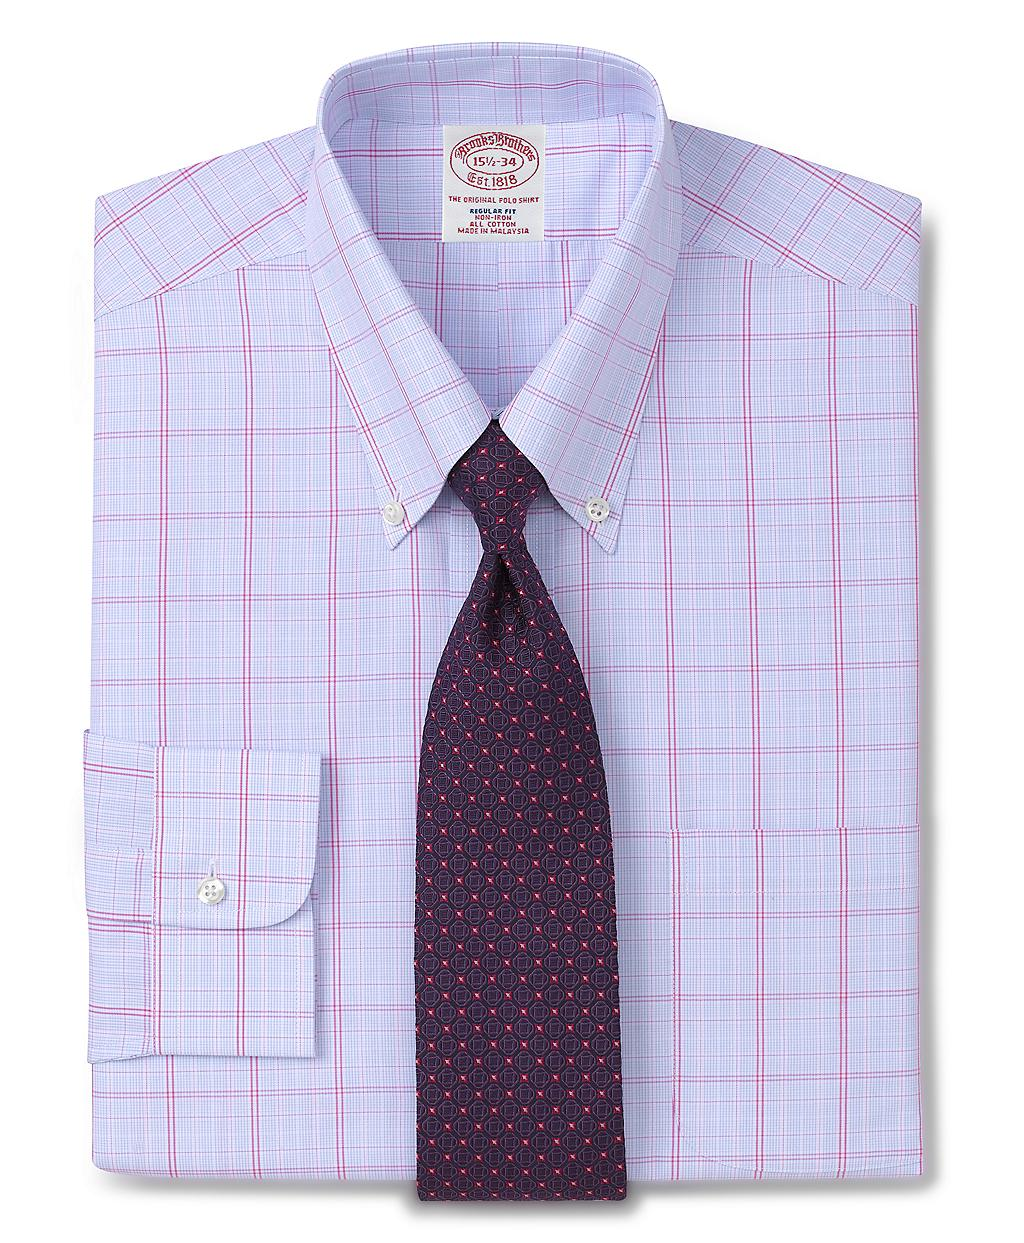 Brooks brothers allcotton noniron regular fit grid Brooks brothers shirt size guide